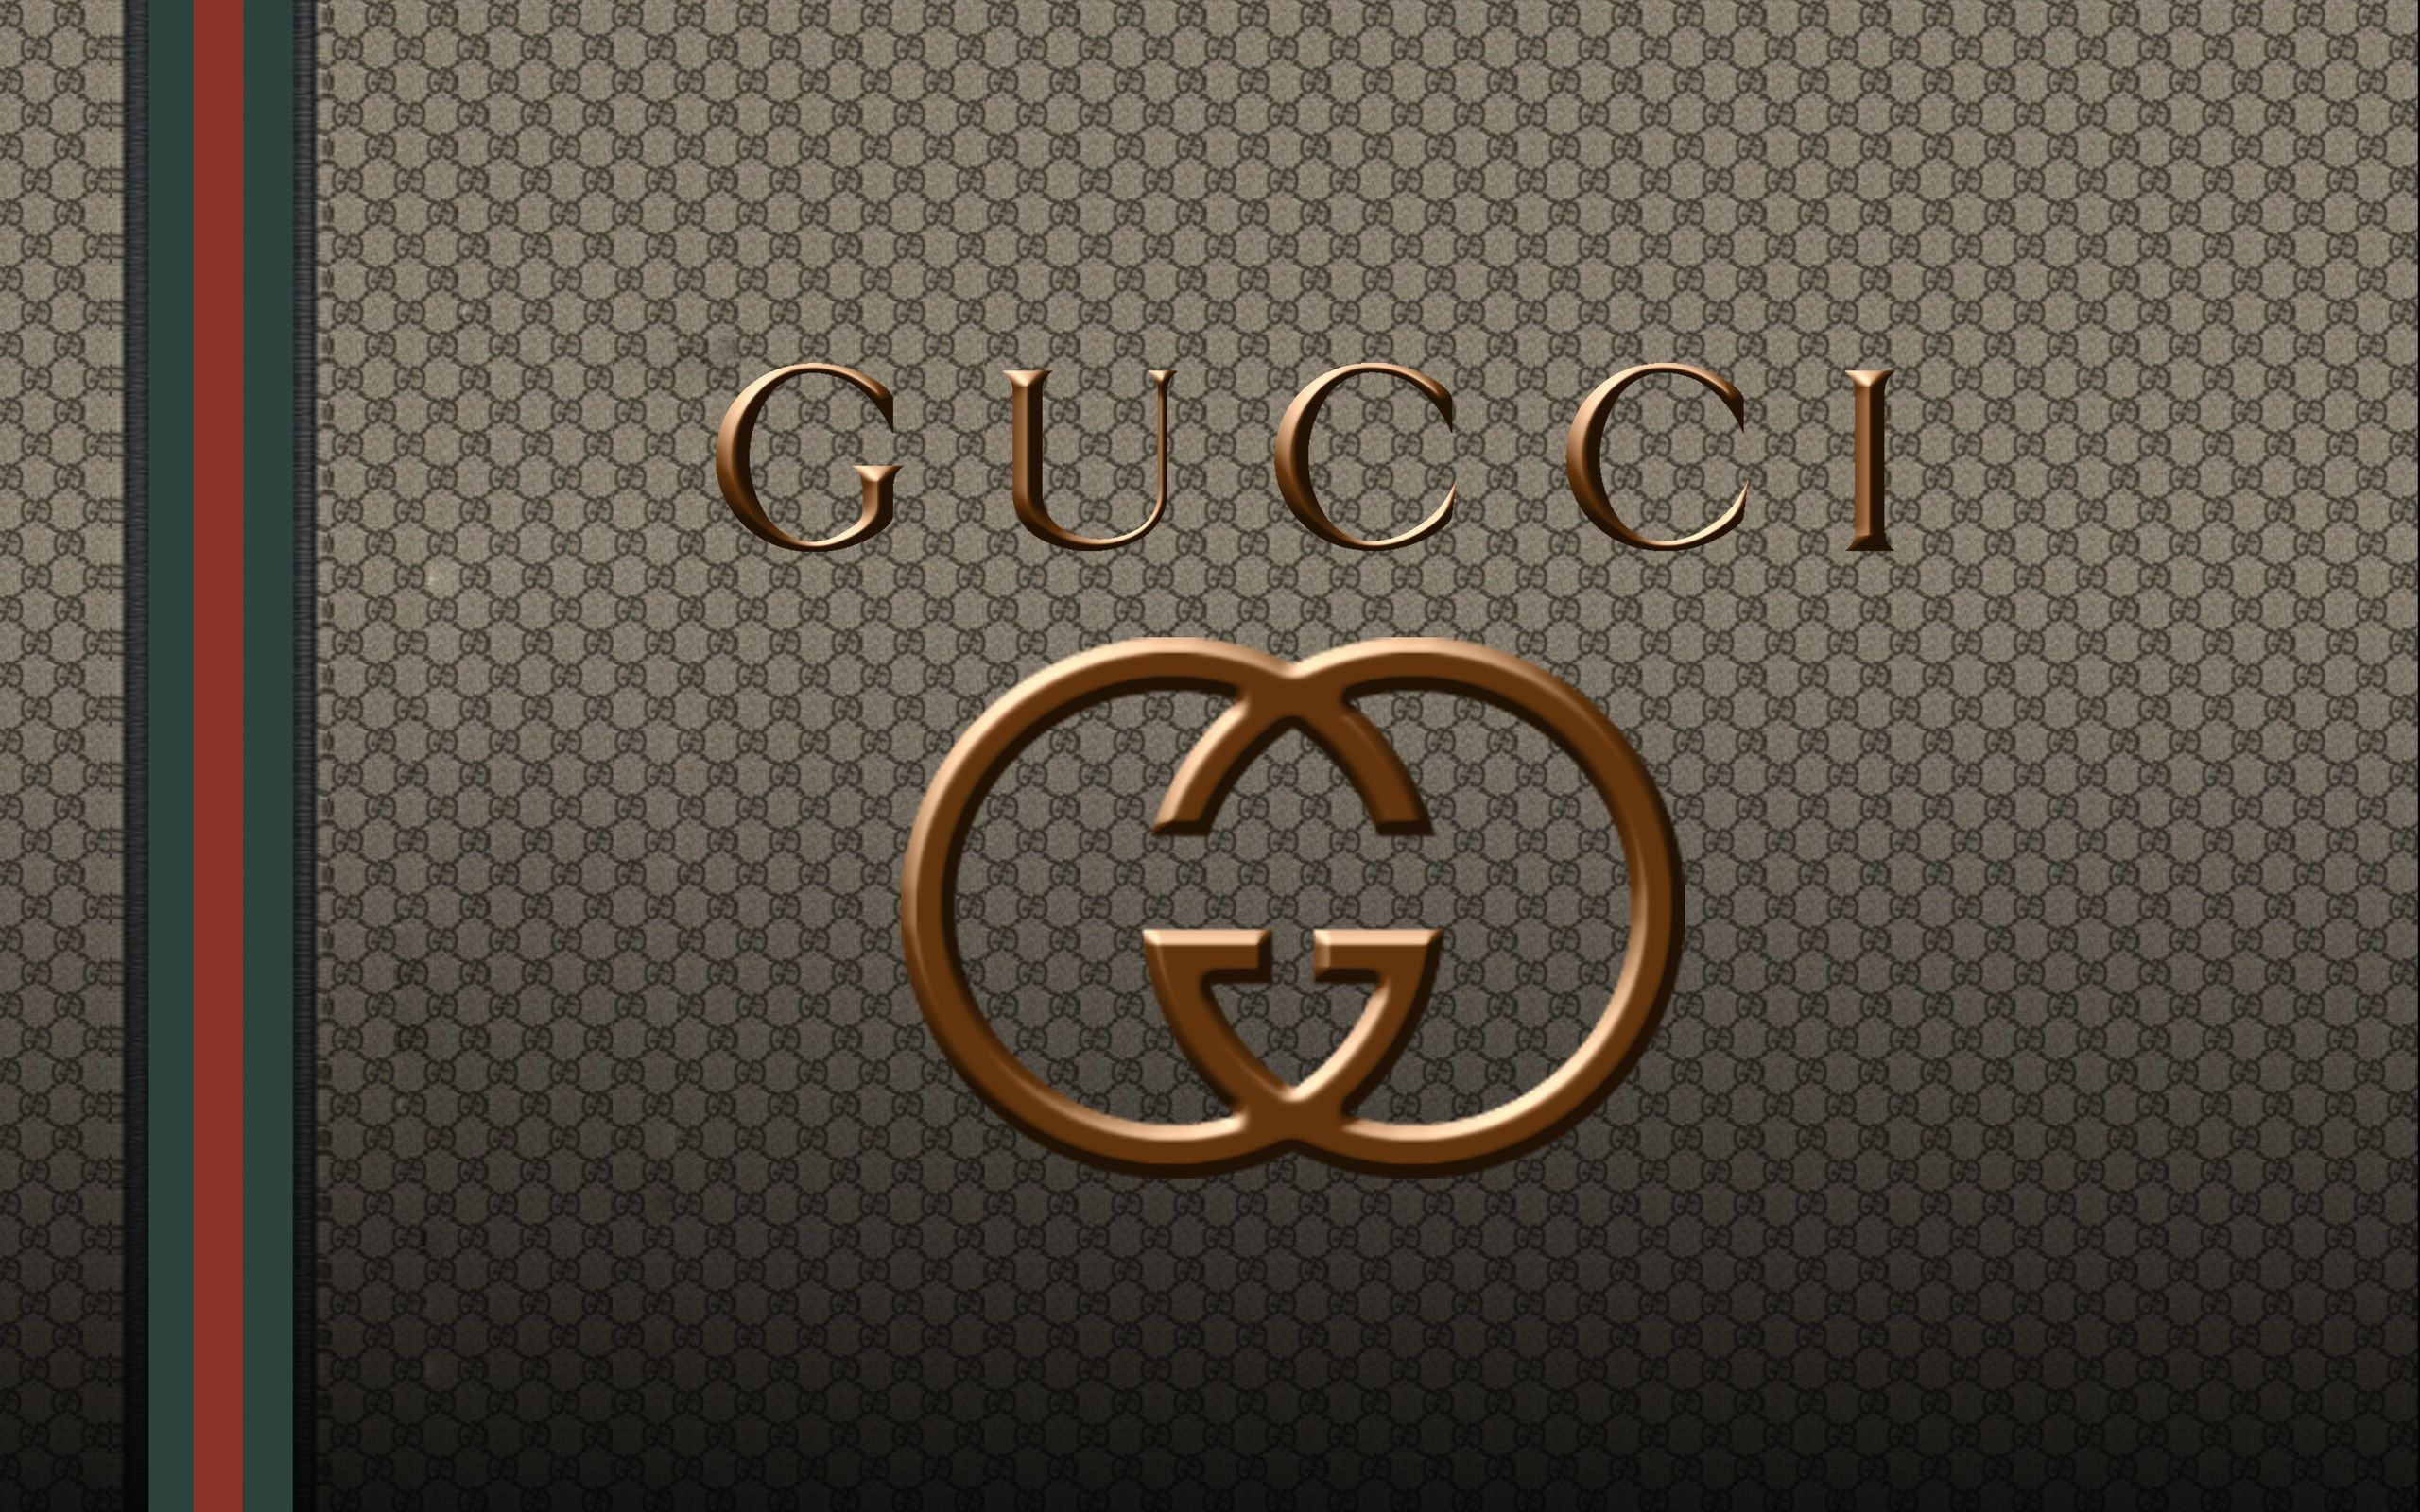 gucci logo wallpapers hd pictures images hd picture pinterest